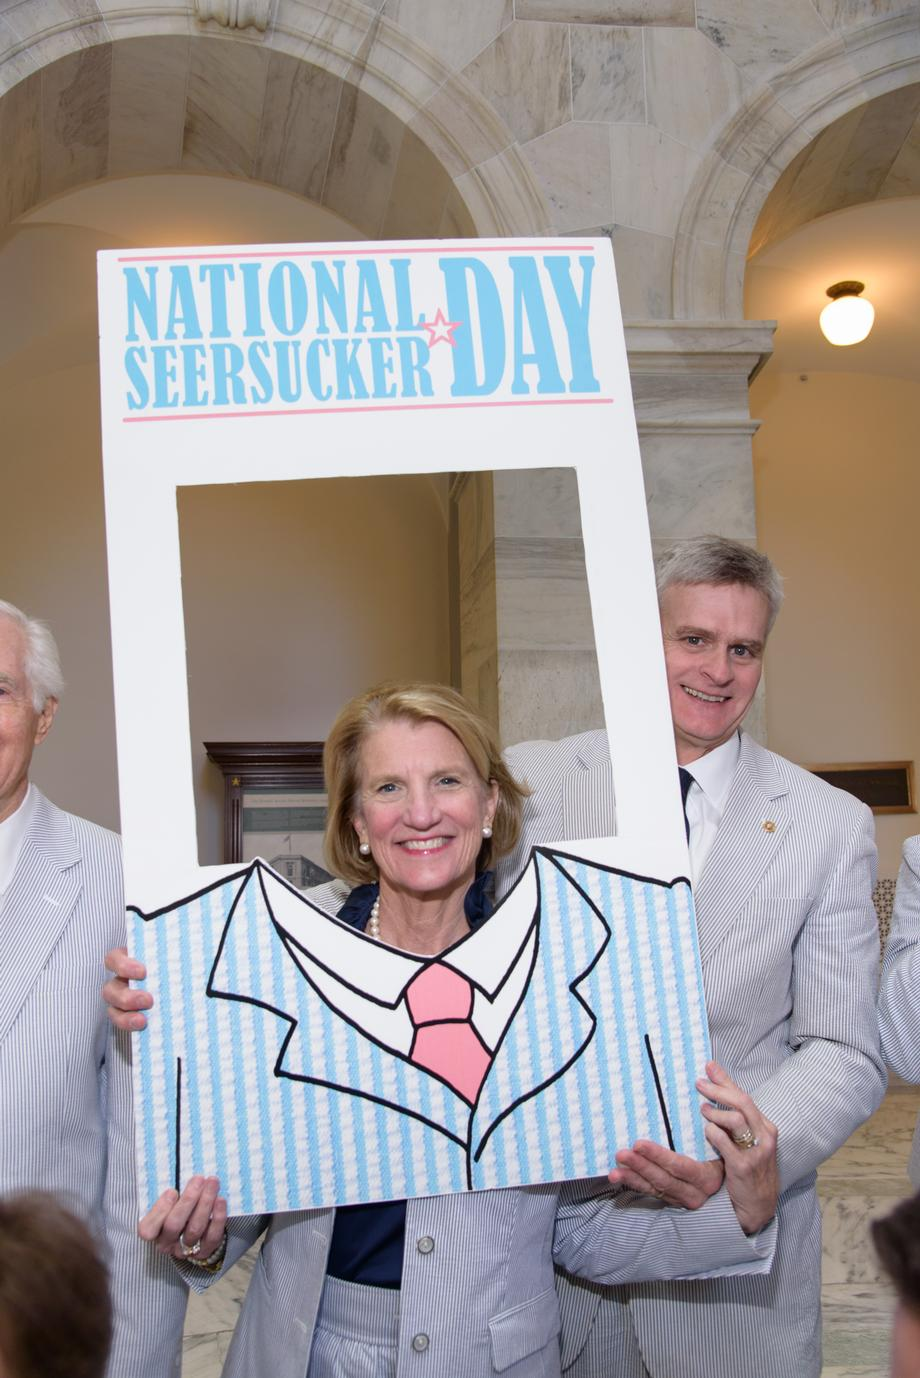 National Seersucker Day 2016